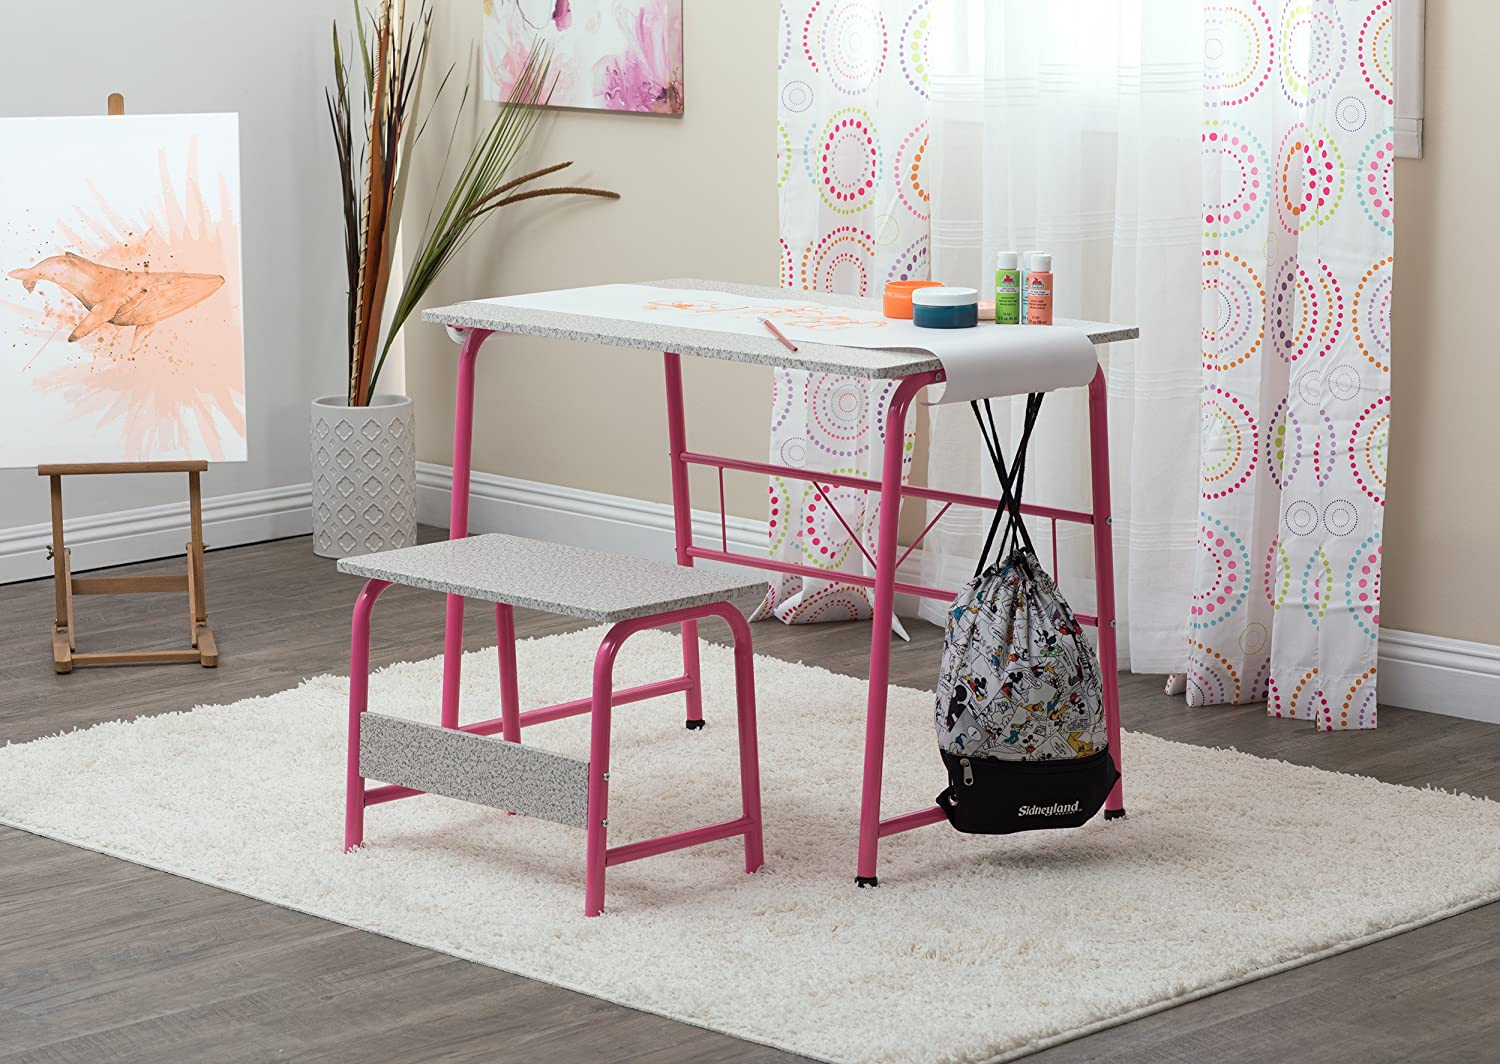 SD Studio Designs Project Center, Craft Table Play Desk with Bench in Pink Spatter Gray, 55125